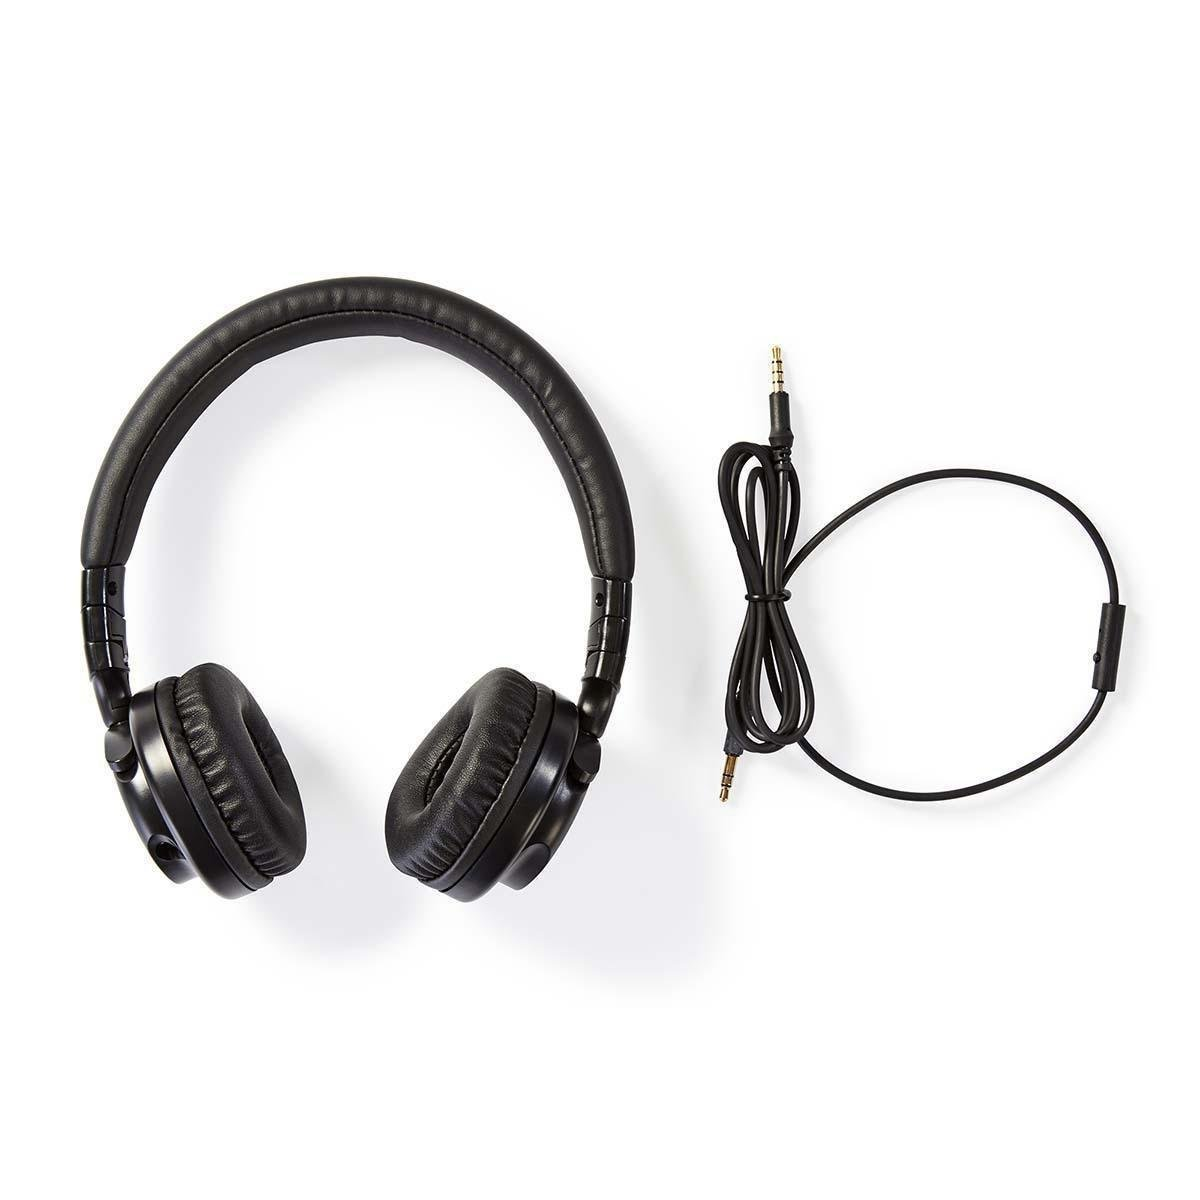 Wired Headphones On-ear Foldable 1.2 m Detachable Cable Black